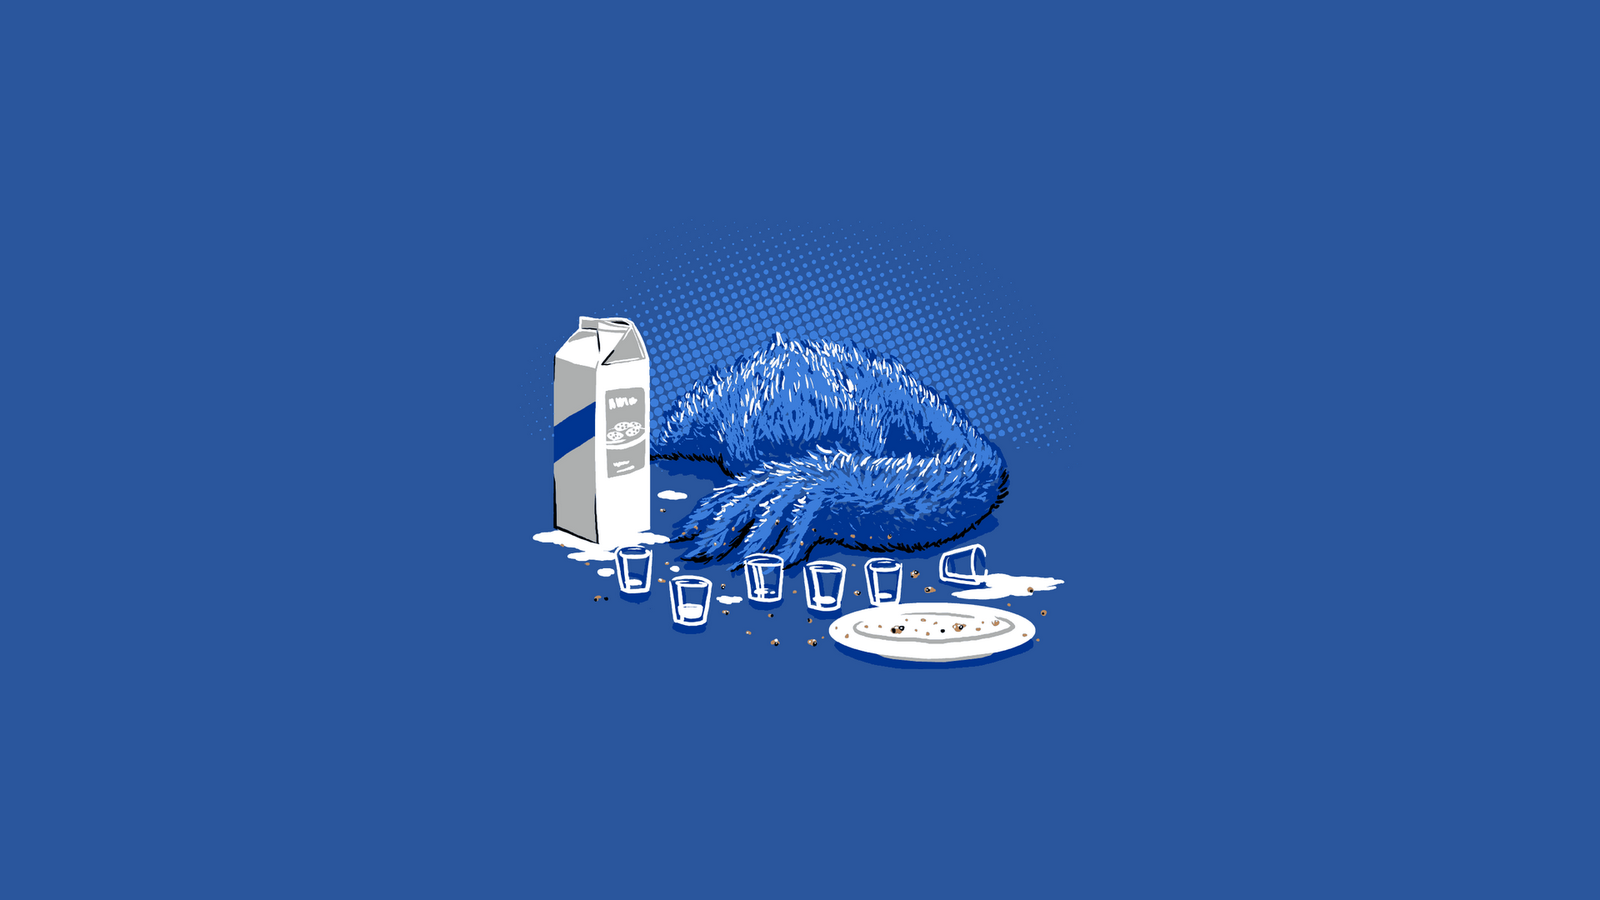 Wallpaper a day: overdosed drunk cookie monster threadless ...